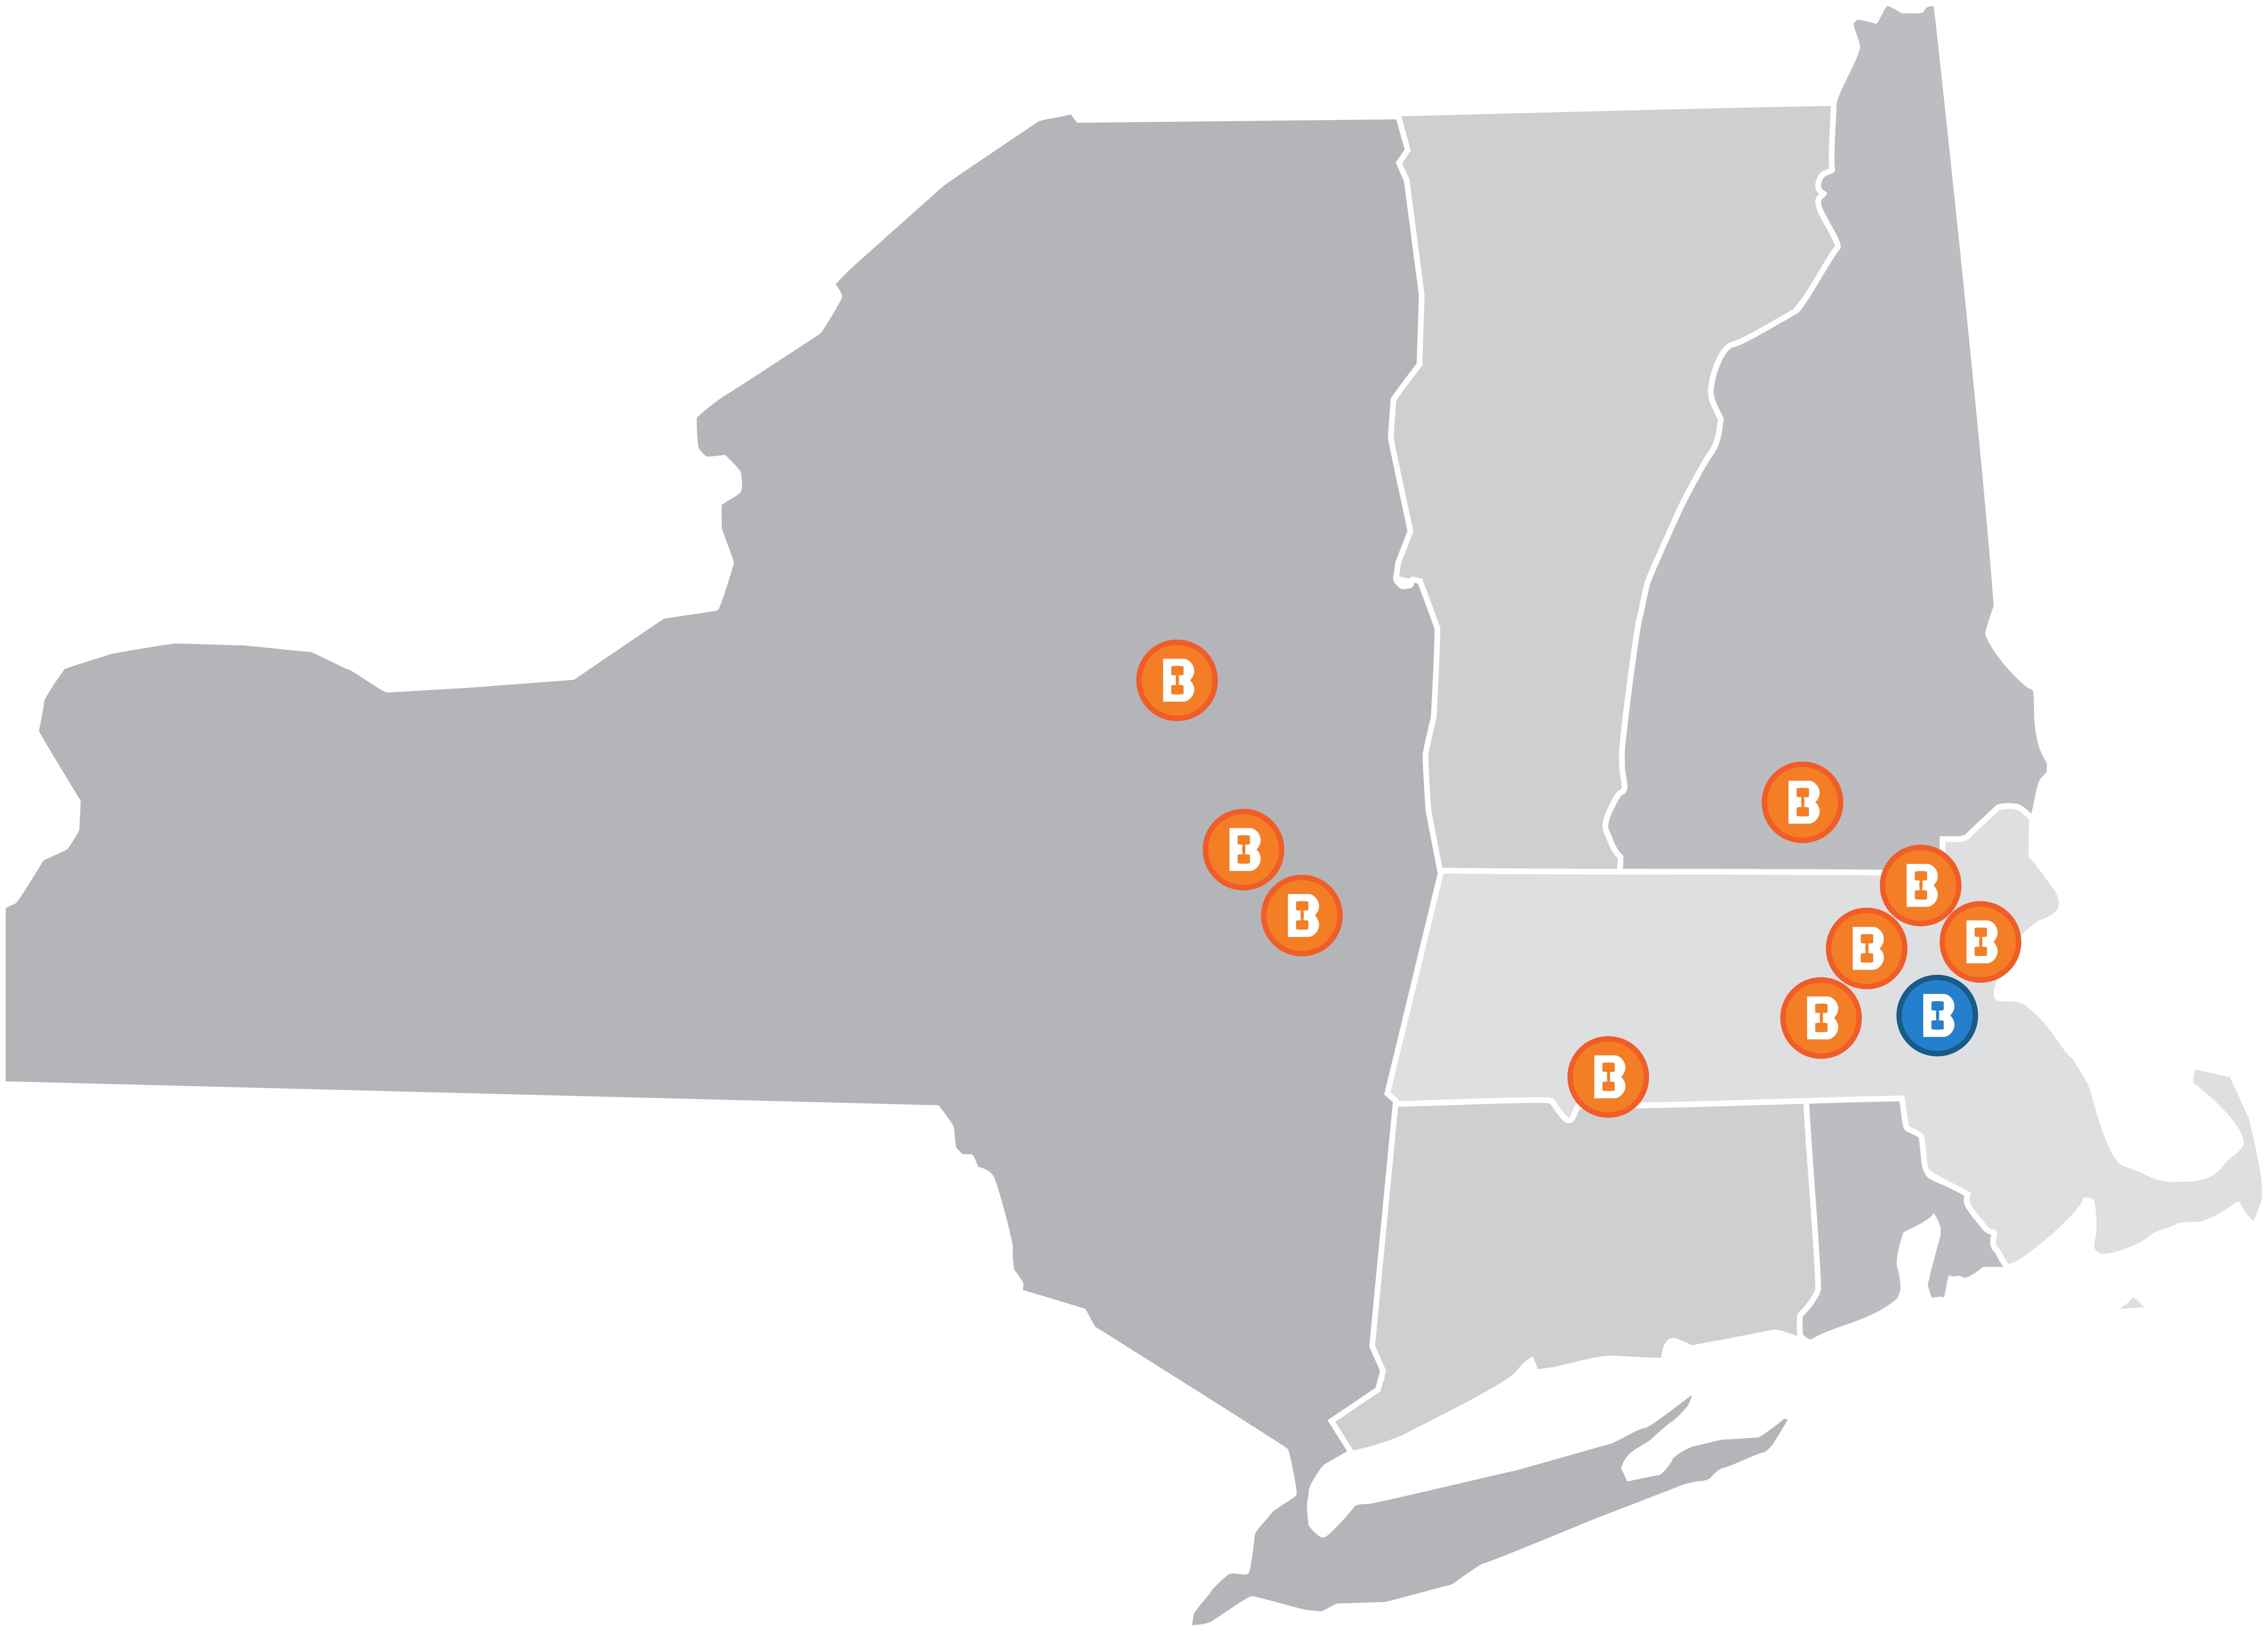 All locations